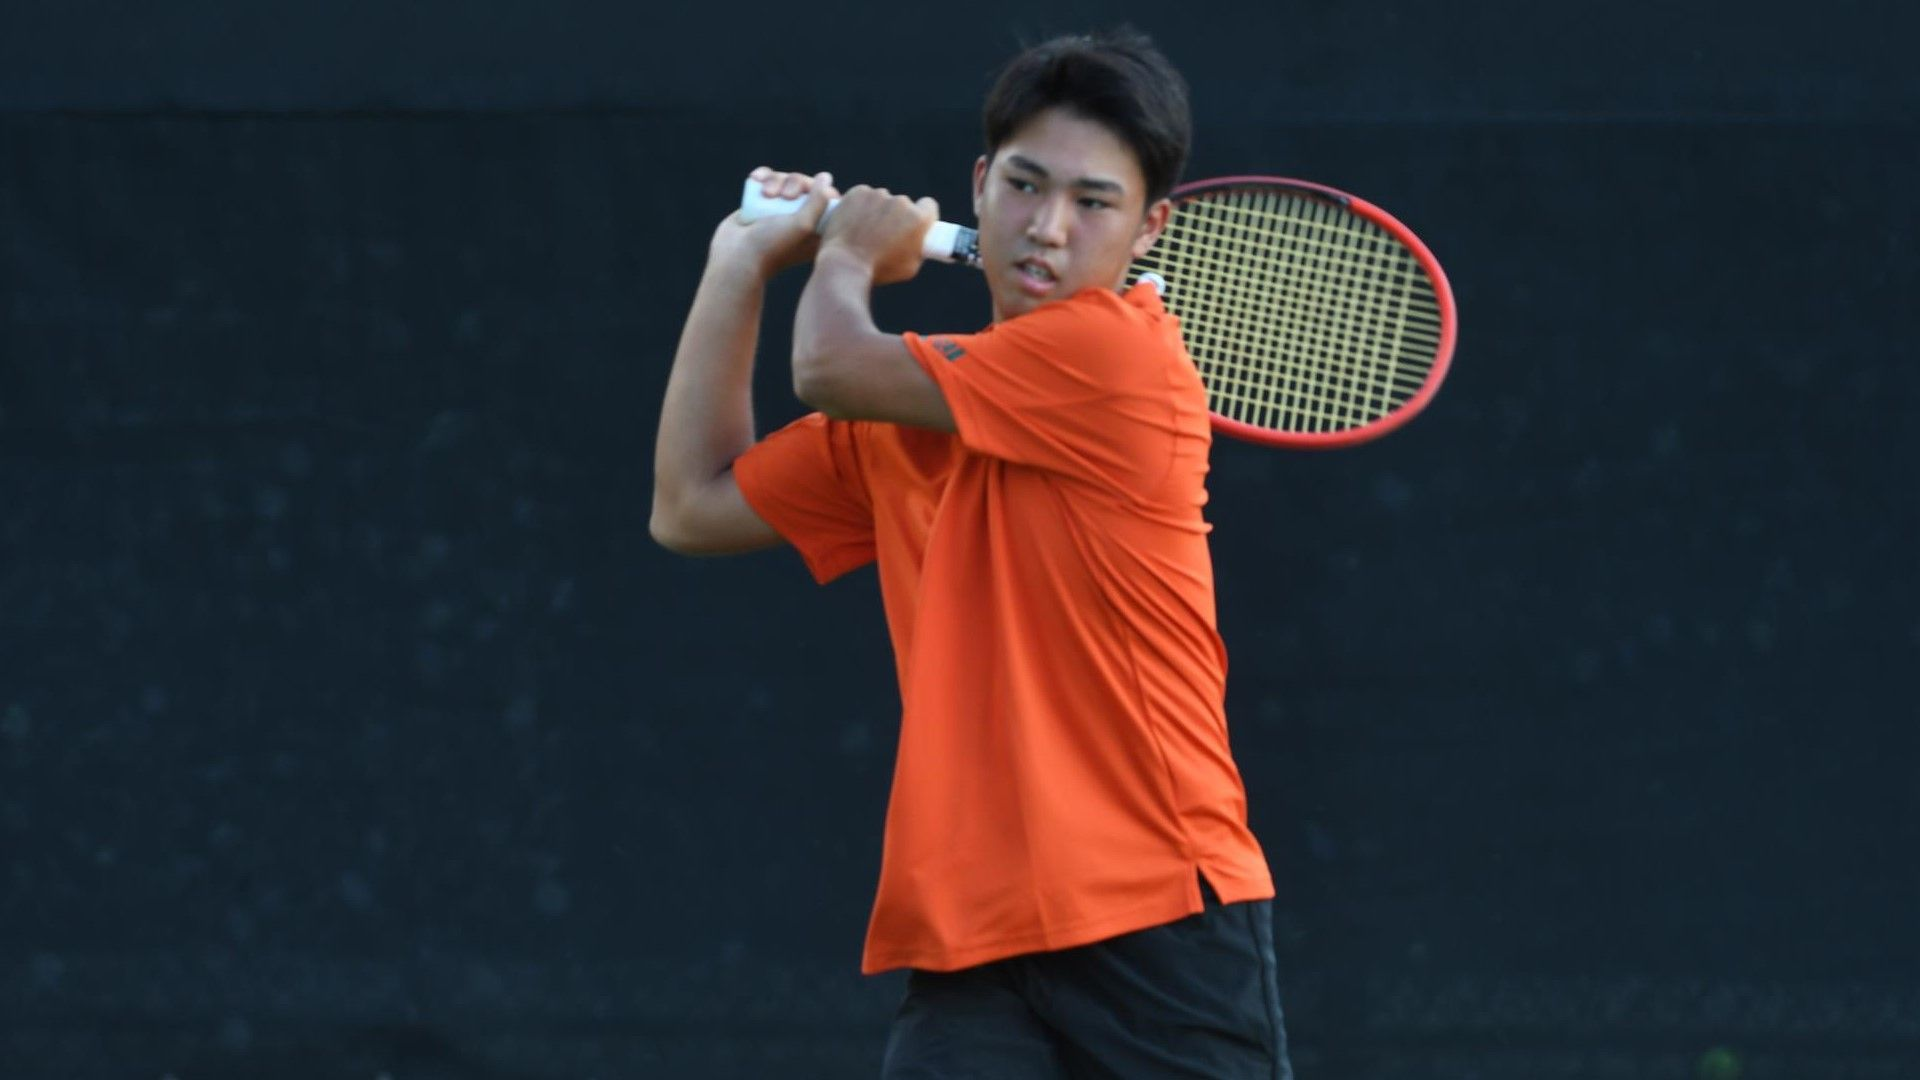 Shimamoto and Soriano to Play For Title in Fall Finales